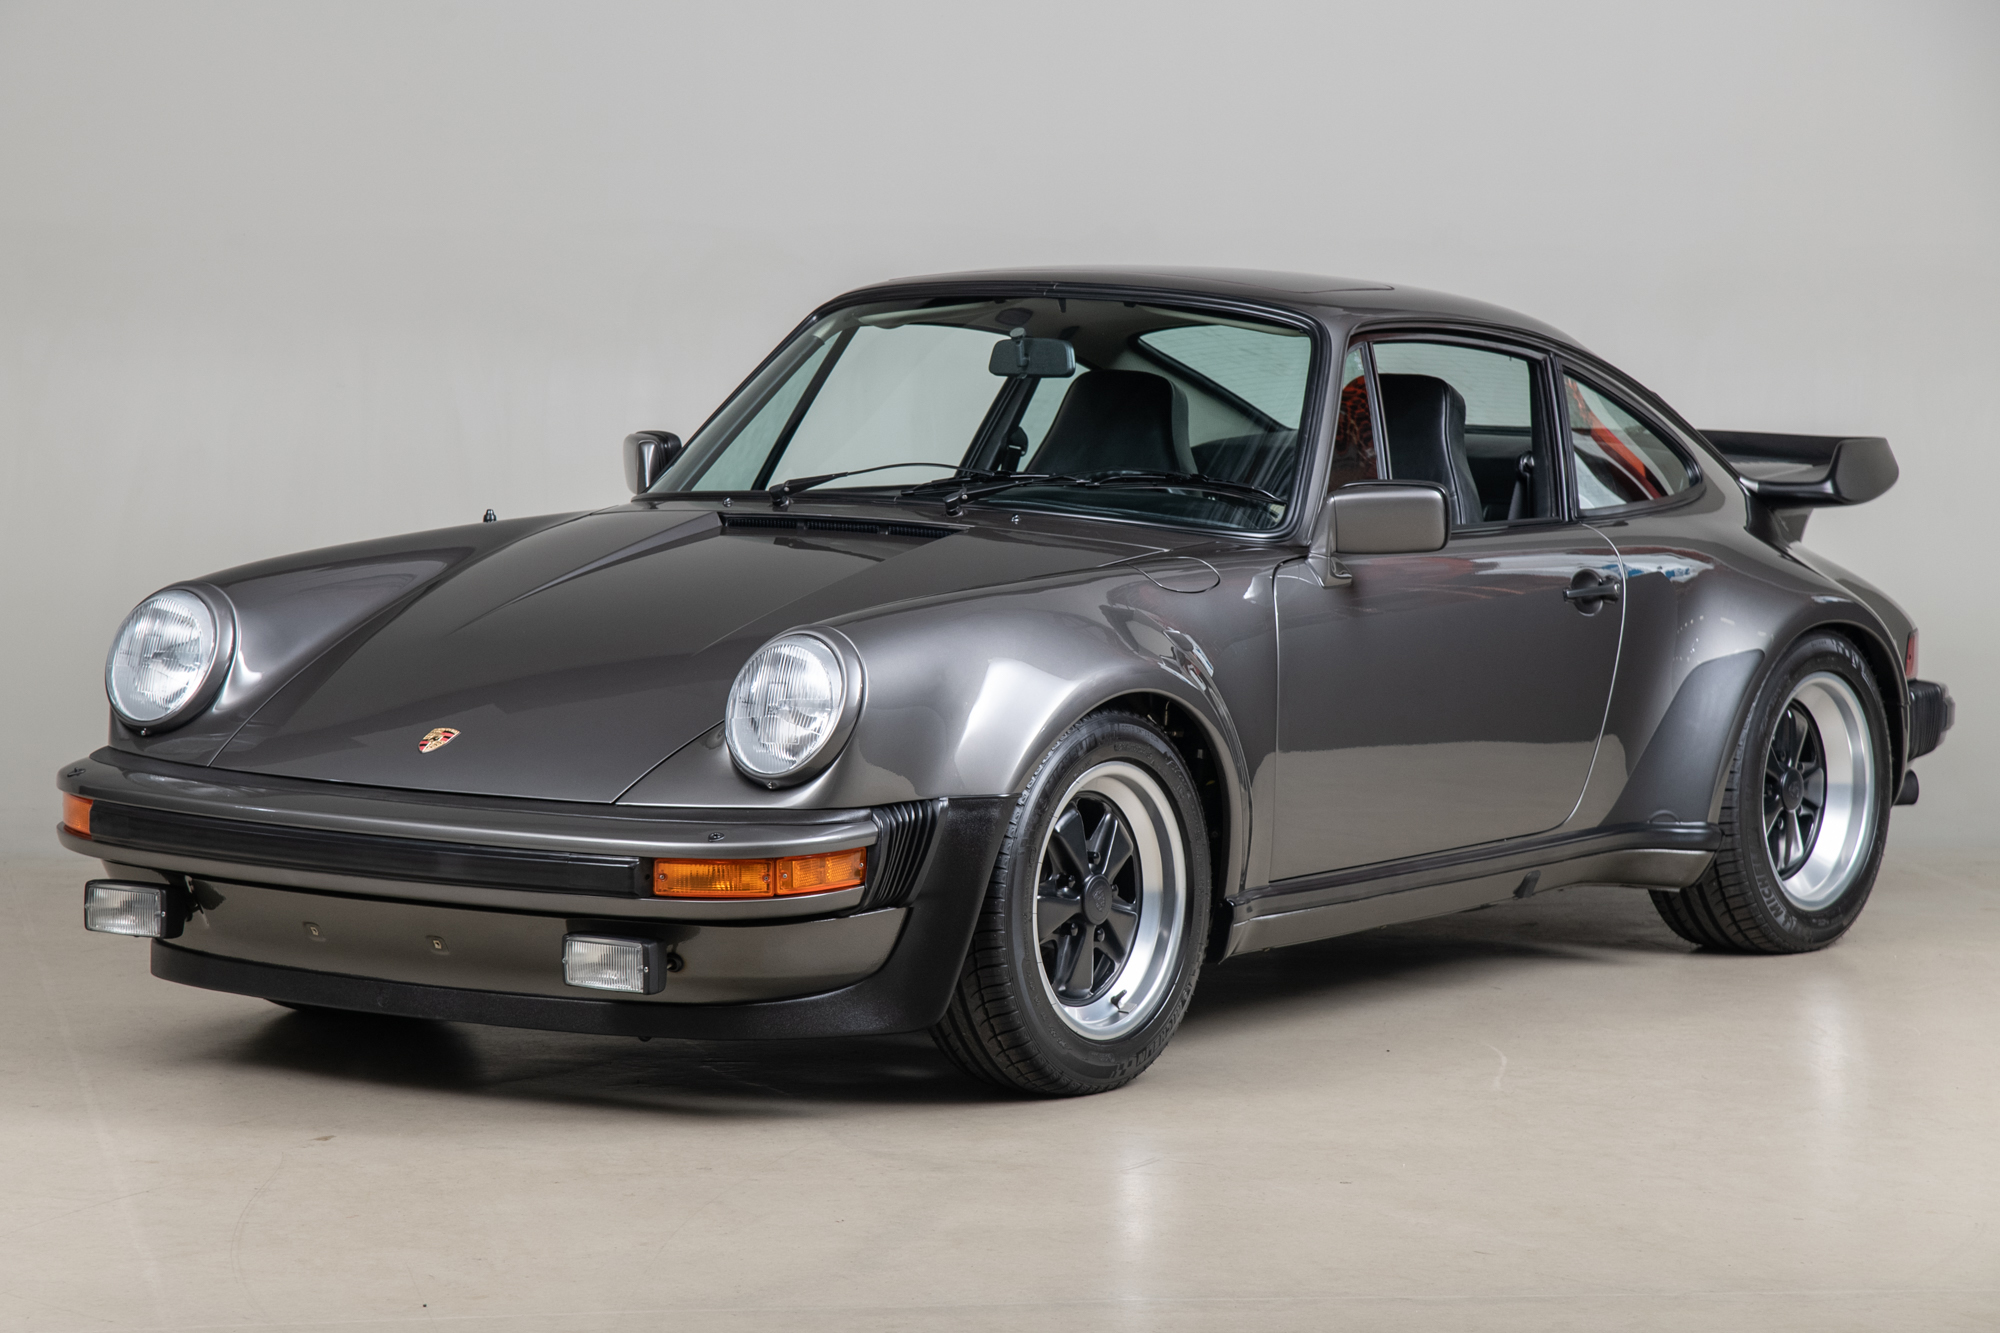 1979 Porsche 930 Turbo , ANTHRACITE GRAY METALLIC, VIN 9309800960, MILEAGE 1743